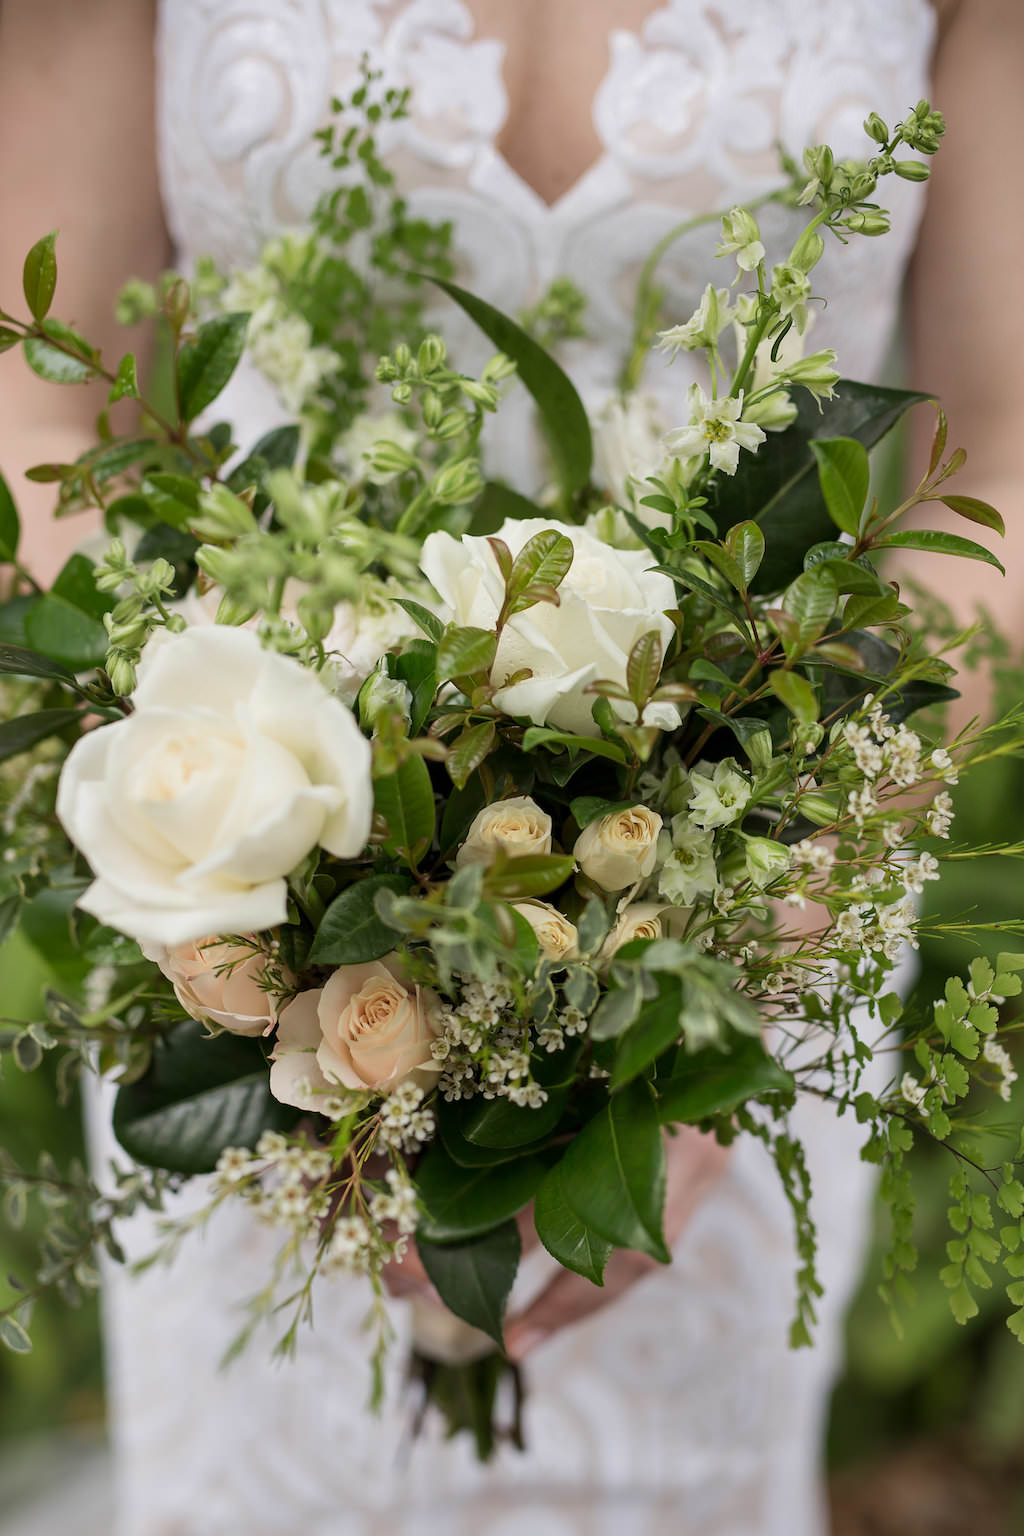 Organic Greenery and White Rose Wedding Bouquet | Tampa Bay Photographer Cat Pennenga Photography| Sarasota Wedding Planner NK Productions